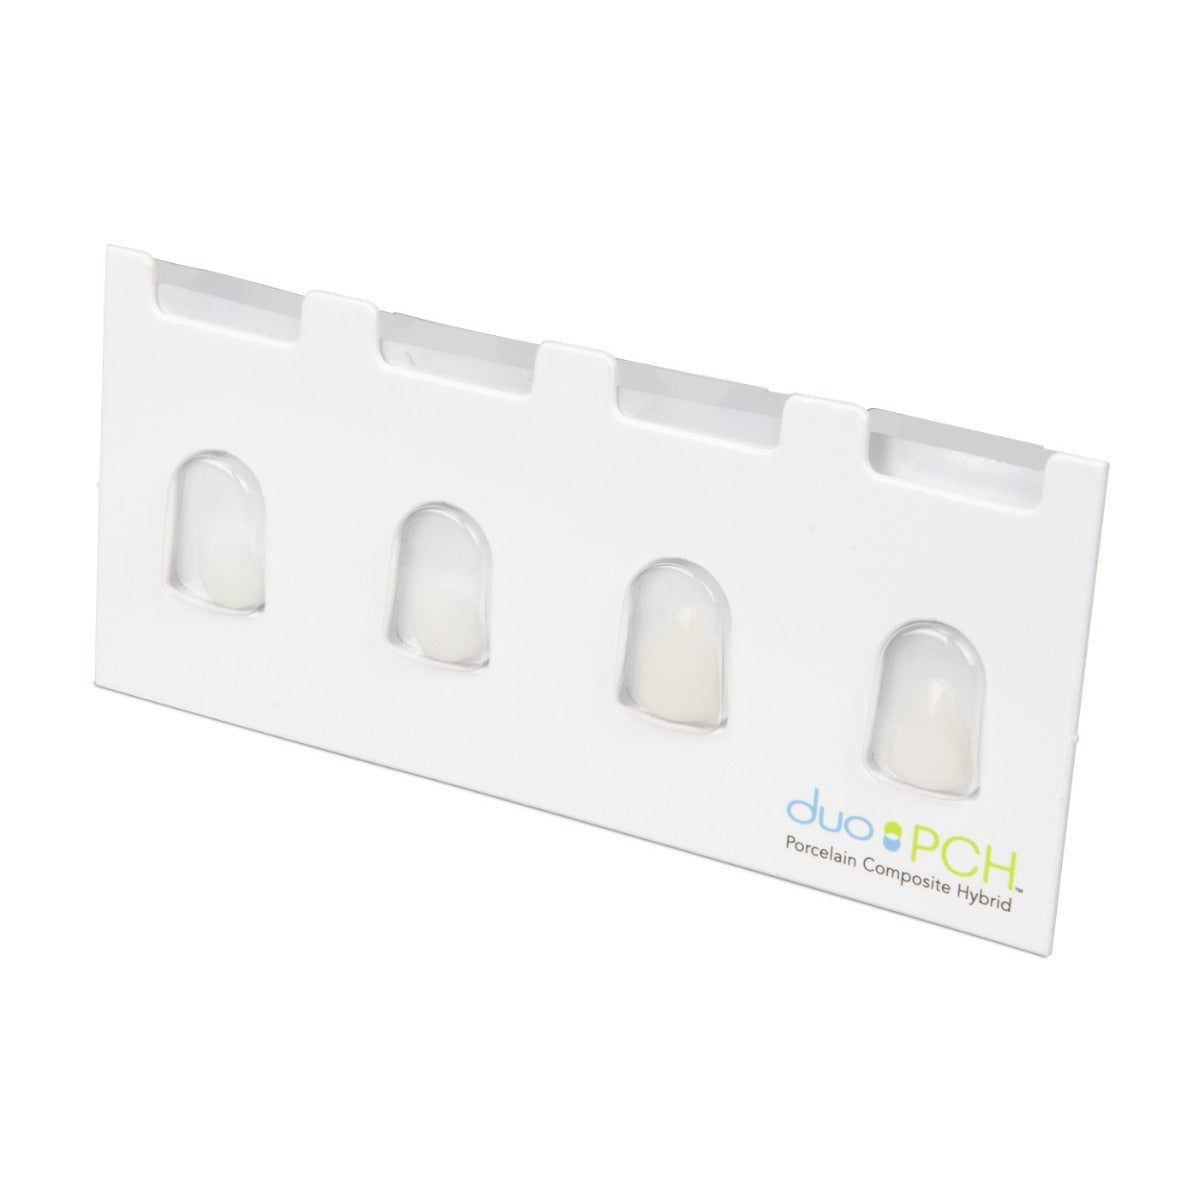 Duo PCH - Small Uppers Universal Bicuspids - B1 Standard Translucency